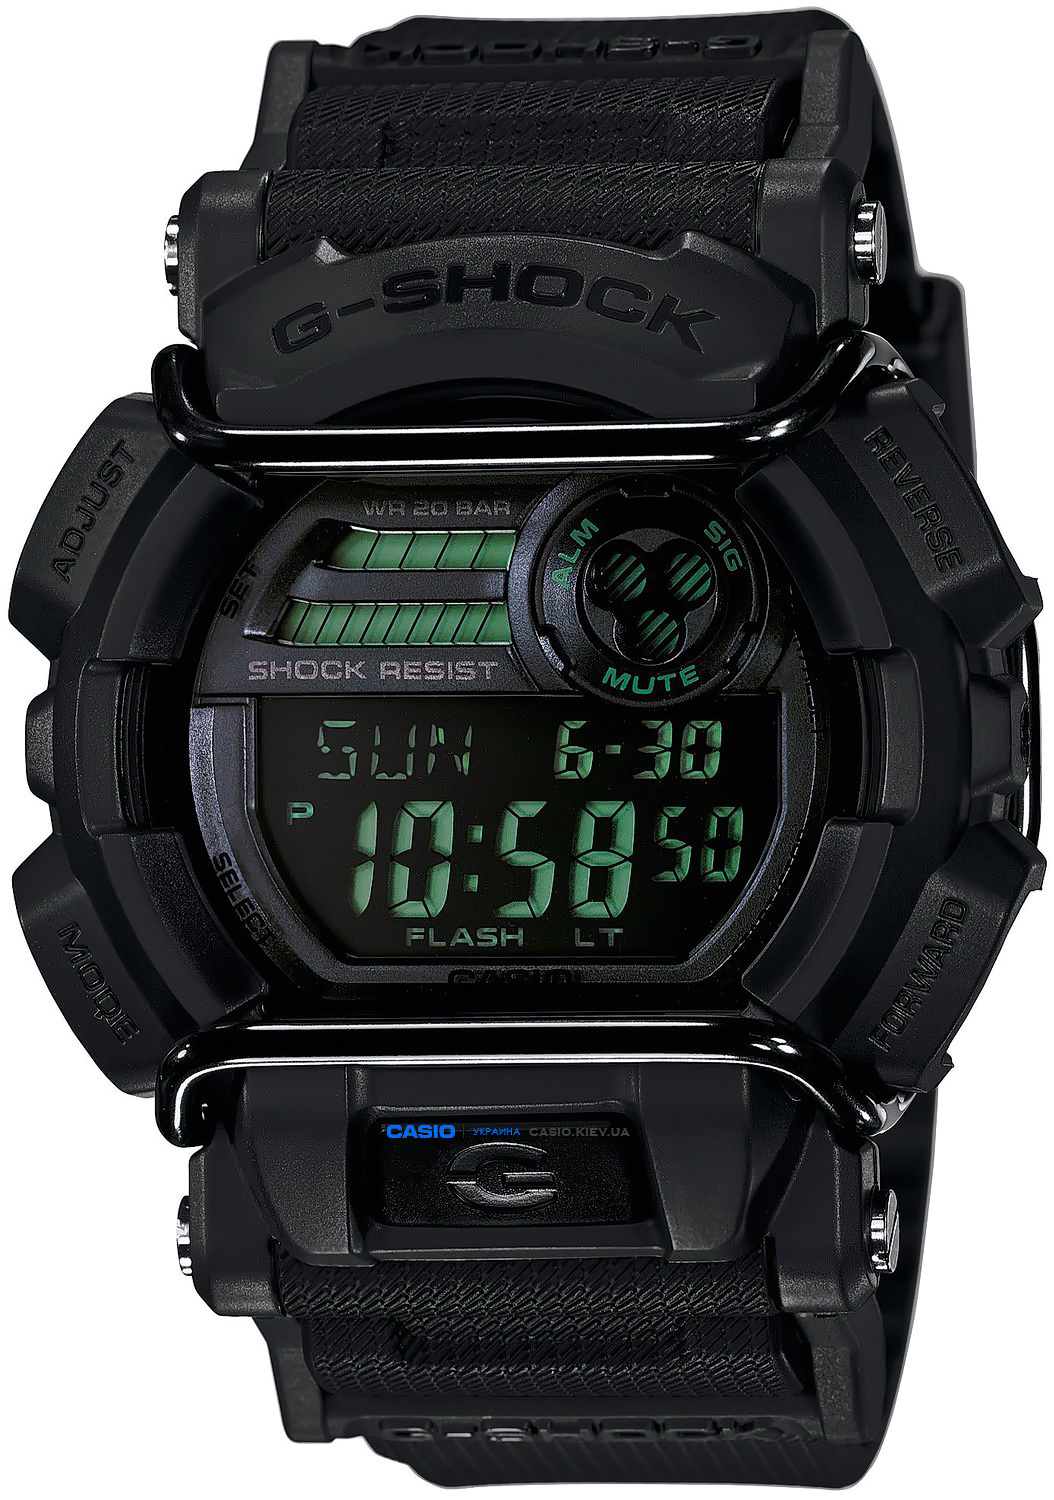 GD-400MB-1ER, Casio G-Shock